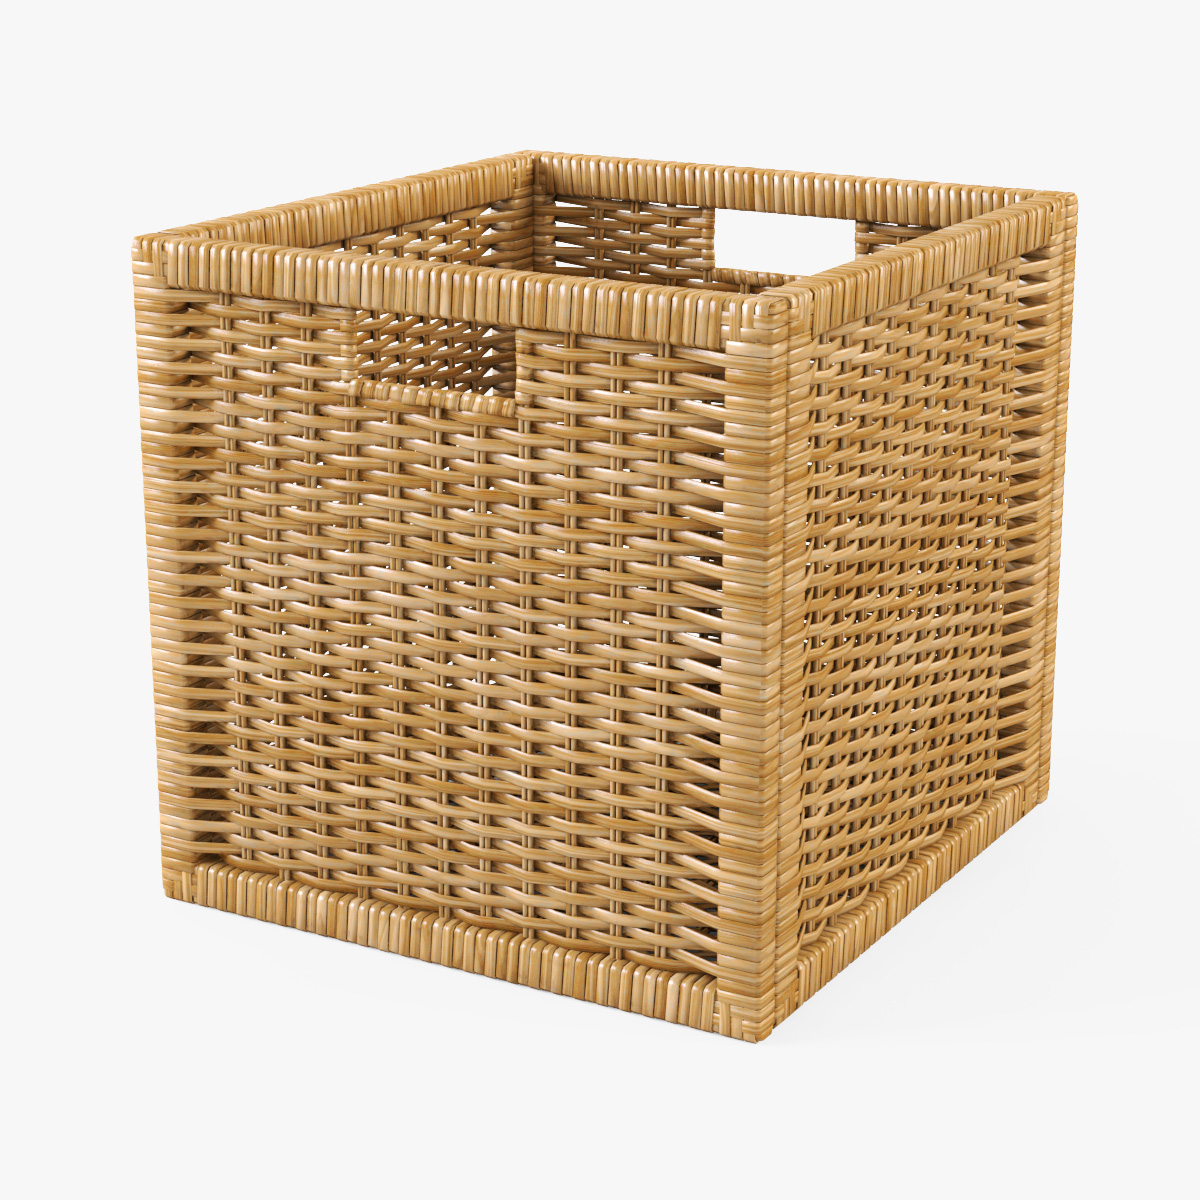 Rattan Ikea Rattan Basket Ikea Branas Natural Color